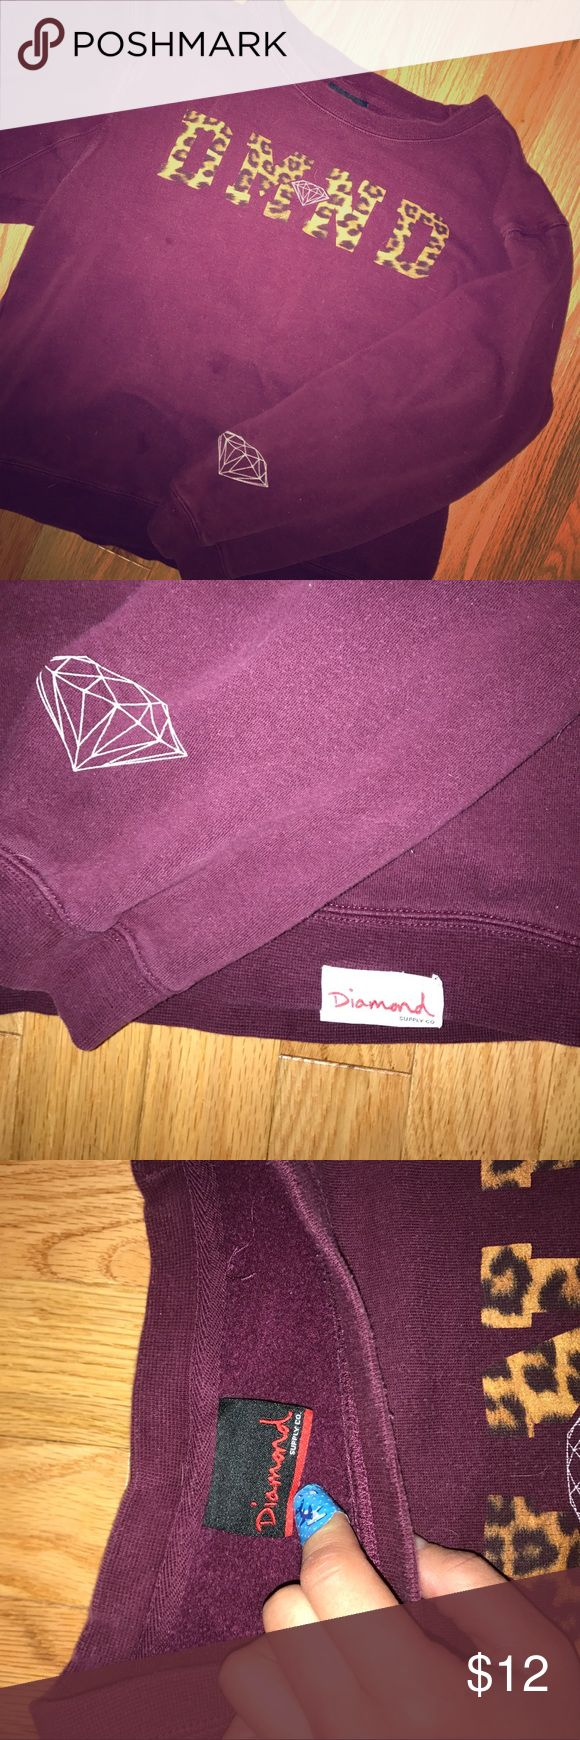 "Maroon sweater Diamond supply company sweater maroon with leopard ""DMND"" written across the front Diamond Supply Co. Tops Sweatshirts & Hoodies"